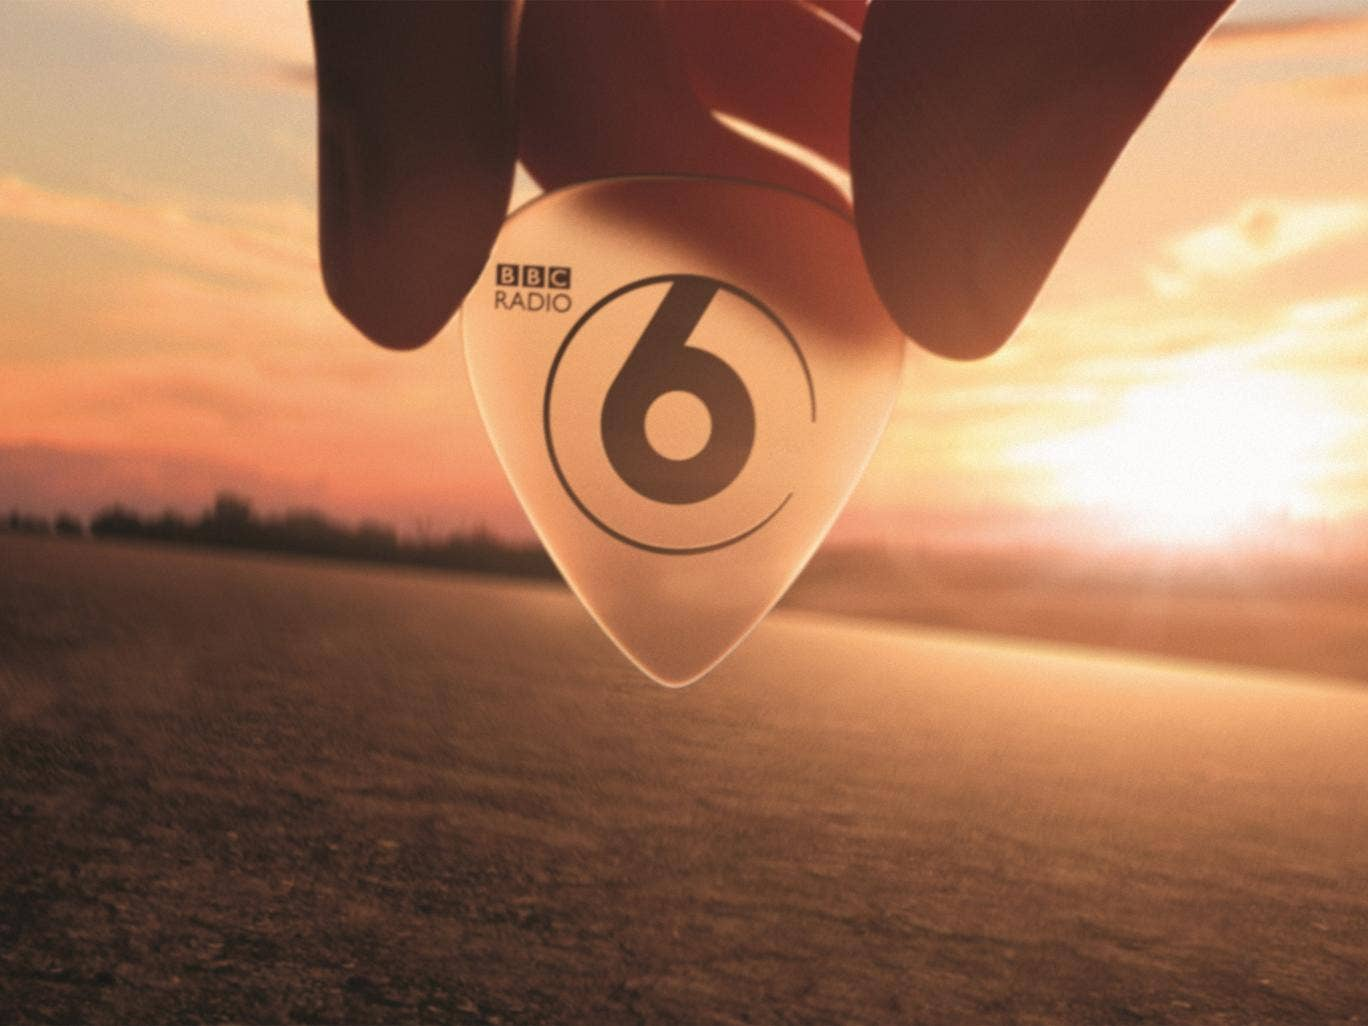 The 6 Music audience has doubled since a campaign to save it from closure